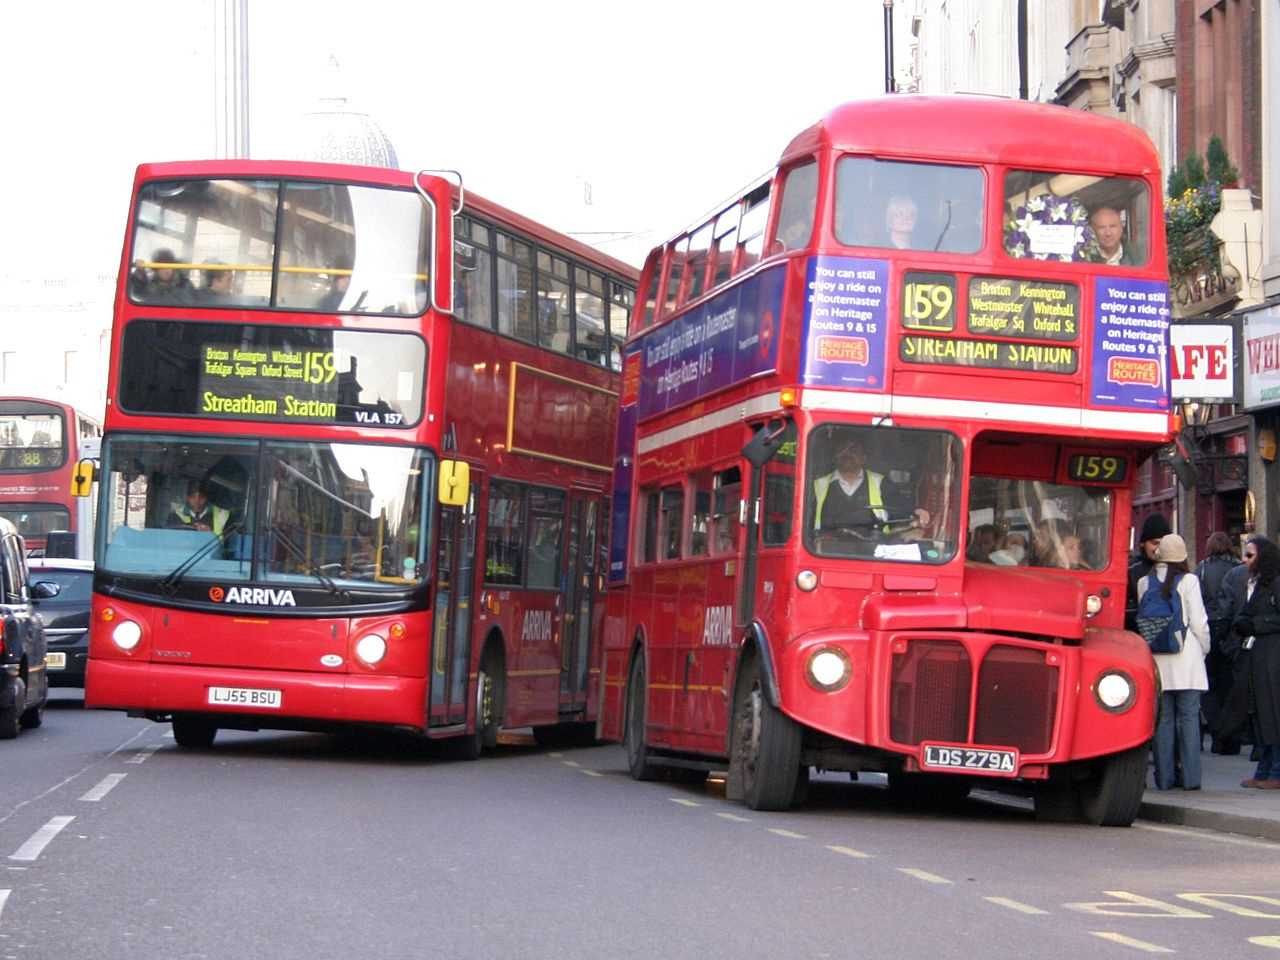 They're on every London street corner, and they take away the blue, green, and yellow light, leaving just red. Image by Jon Bennett, sourced from Wikipedia.